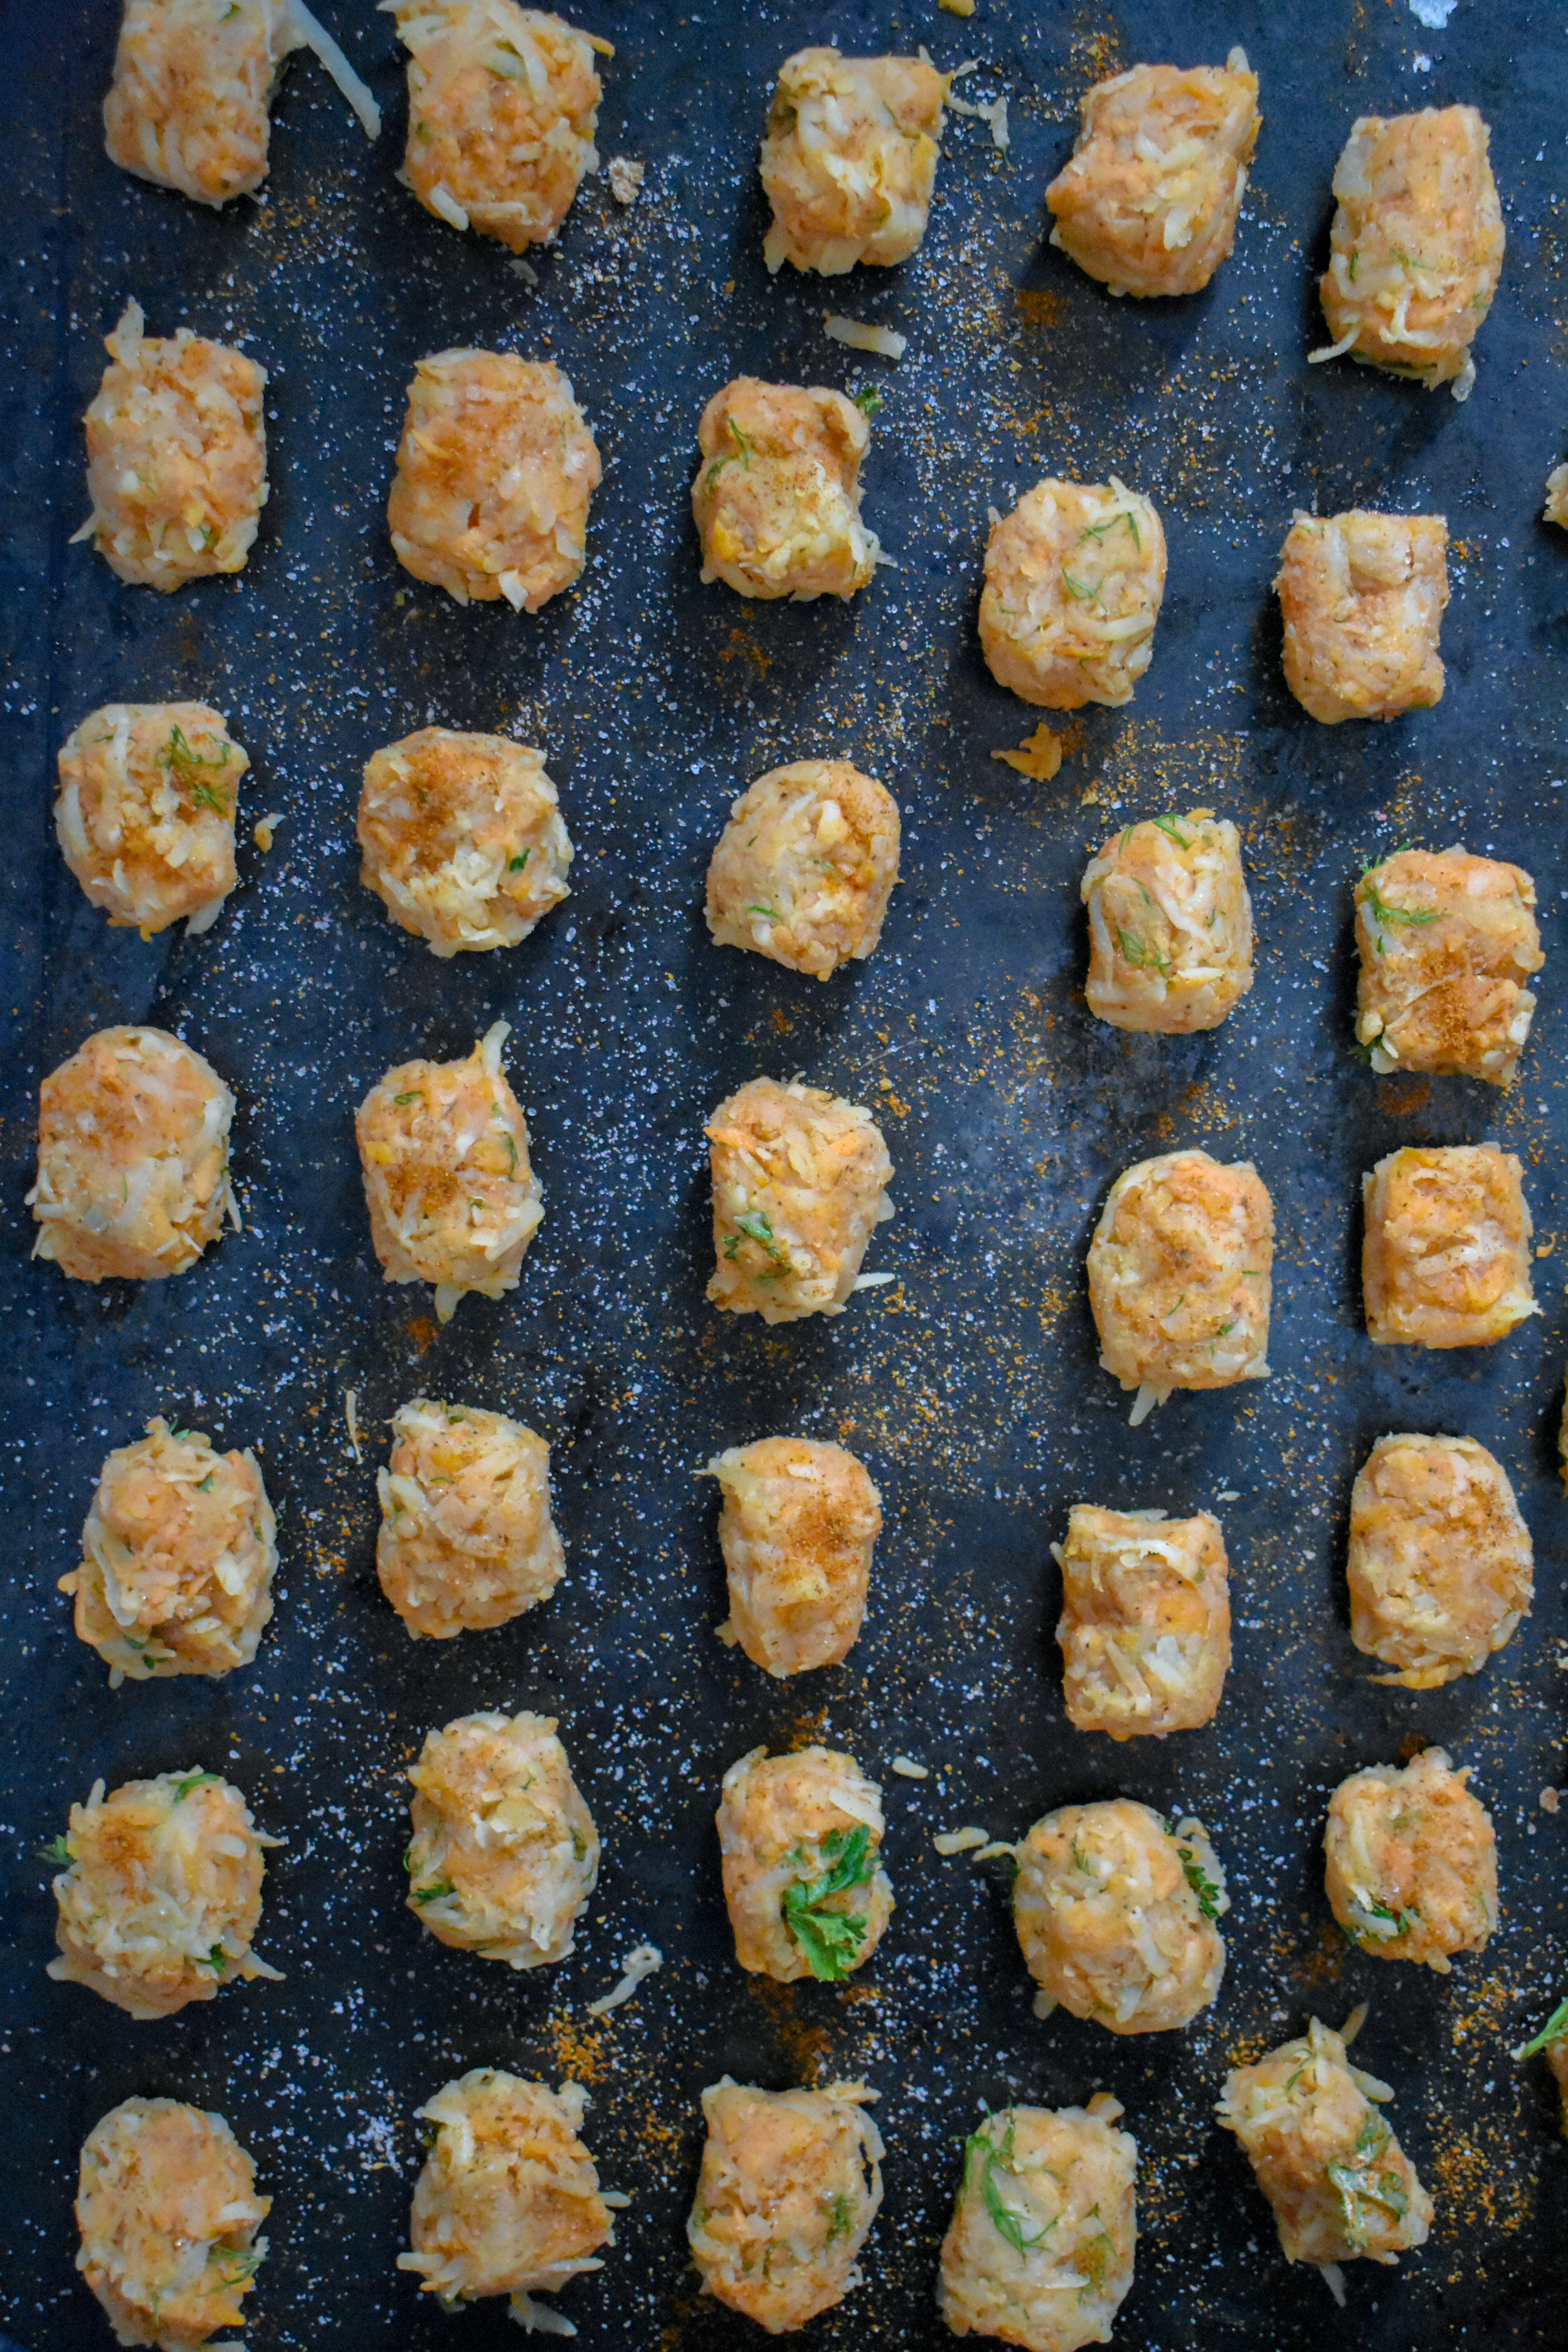 5. Next, use a spoon to scoop out about 1-2 tbl of the mixture and in your hand and place on a (important) oiled baking sheet. Please make sure to rub 1-2 tbl of oil on the baking sheet before adding tots. They'll stick if you don't. Place into oven at 400F for ~25minutes.